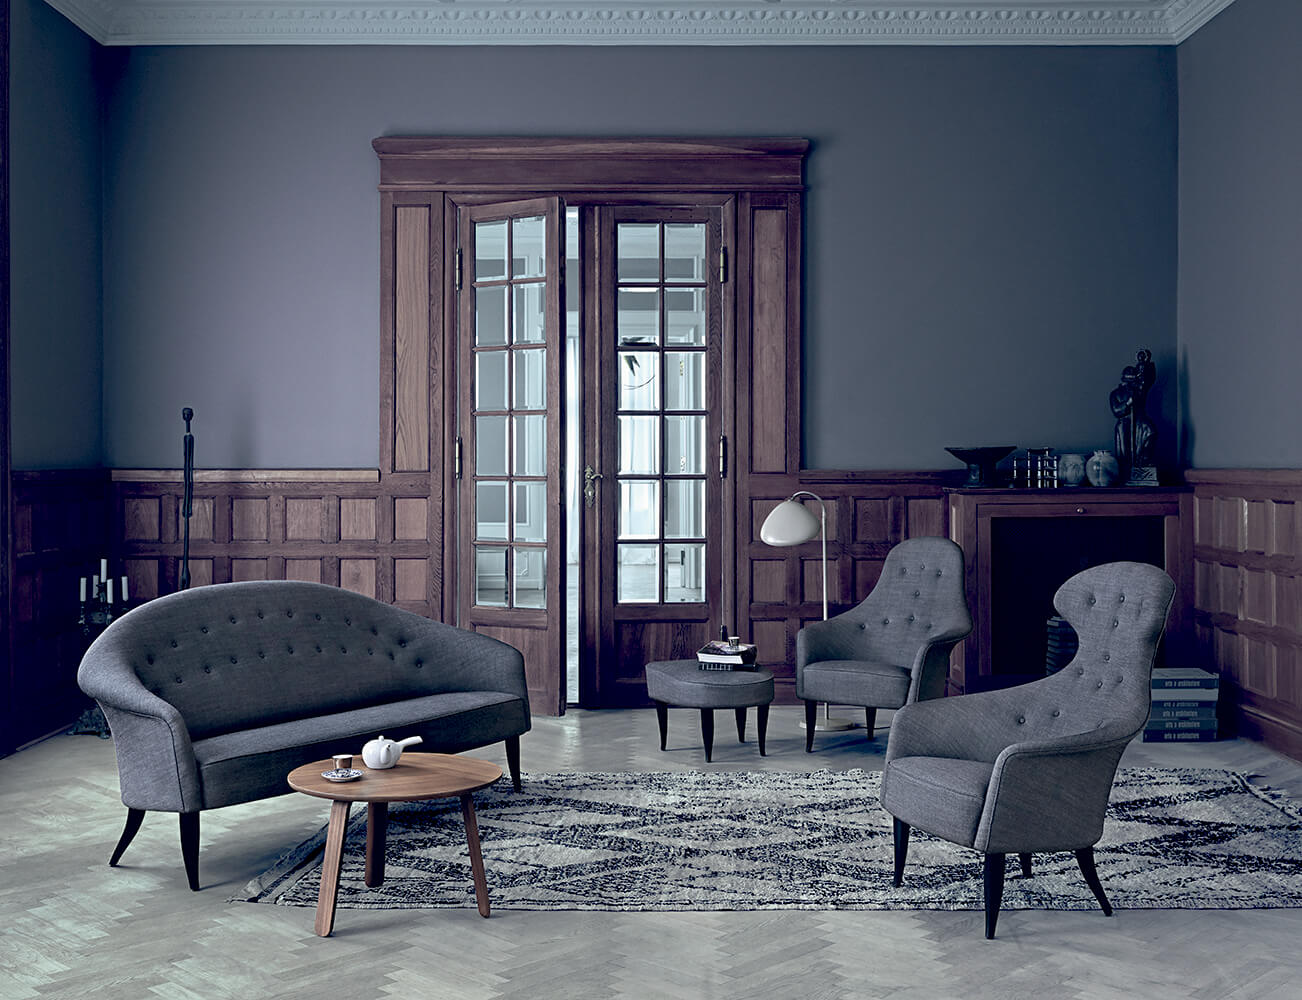 Paradiset sofa adam chair eva chair fig leaf footrest remix 2 152 paper table walnut cobra floor lamp warm grey